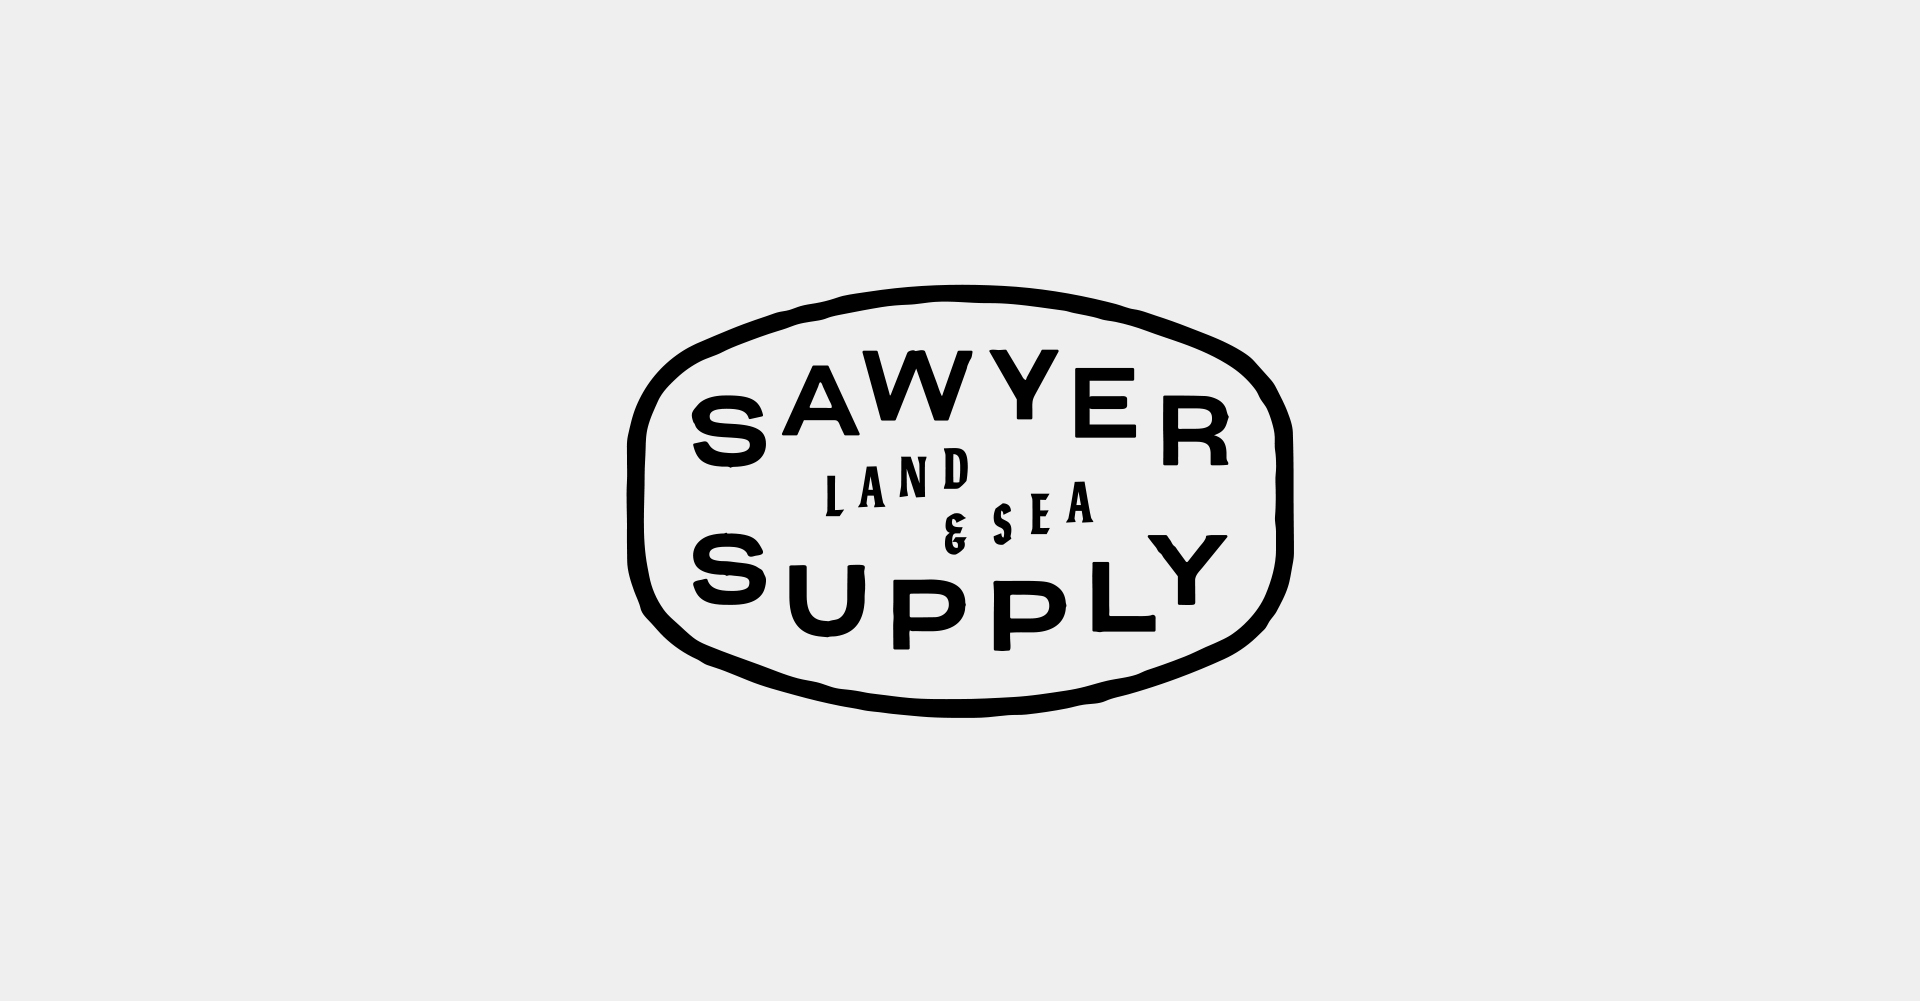 SawyerSupply_Logo.jpg